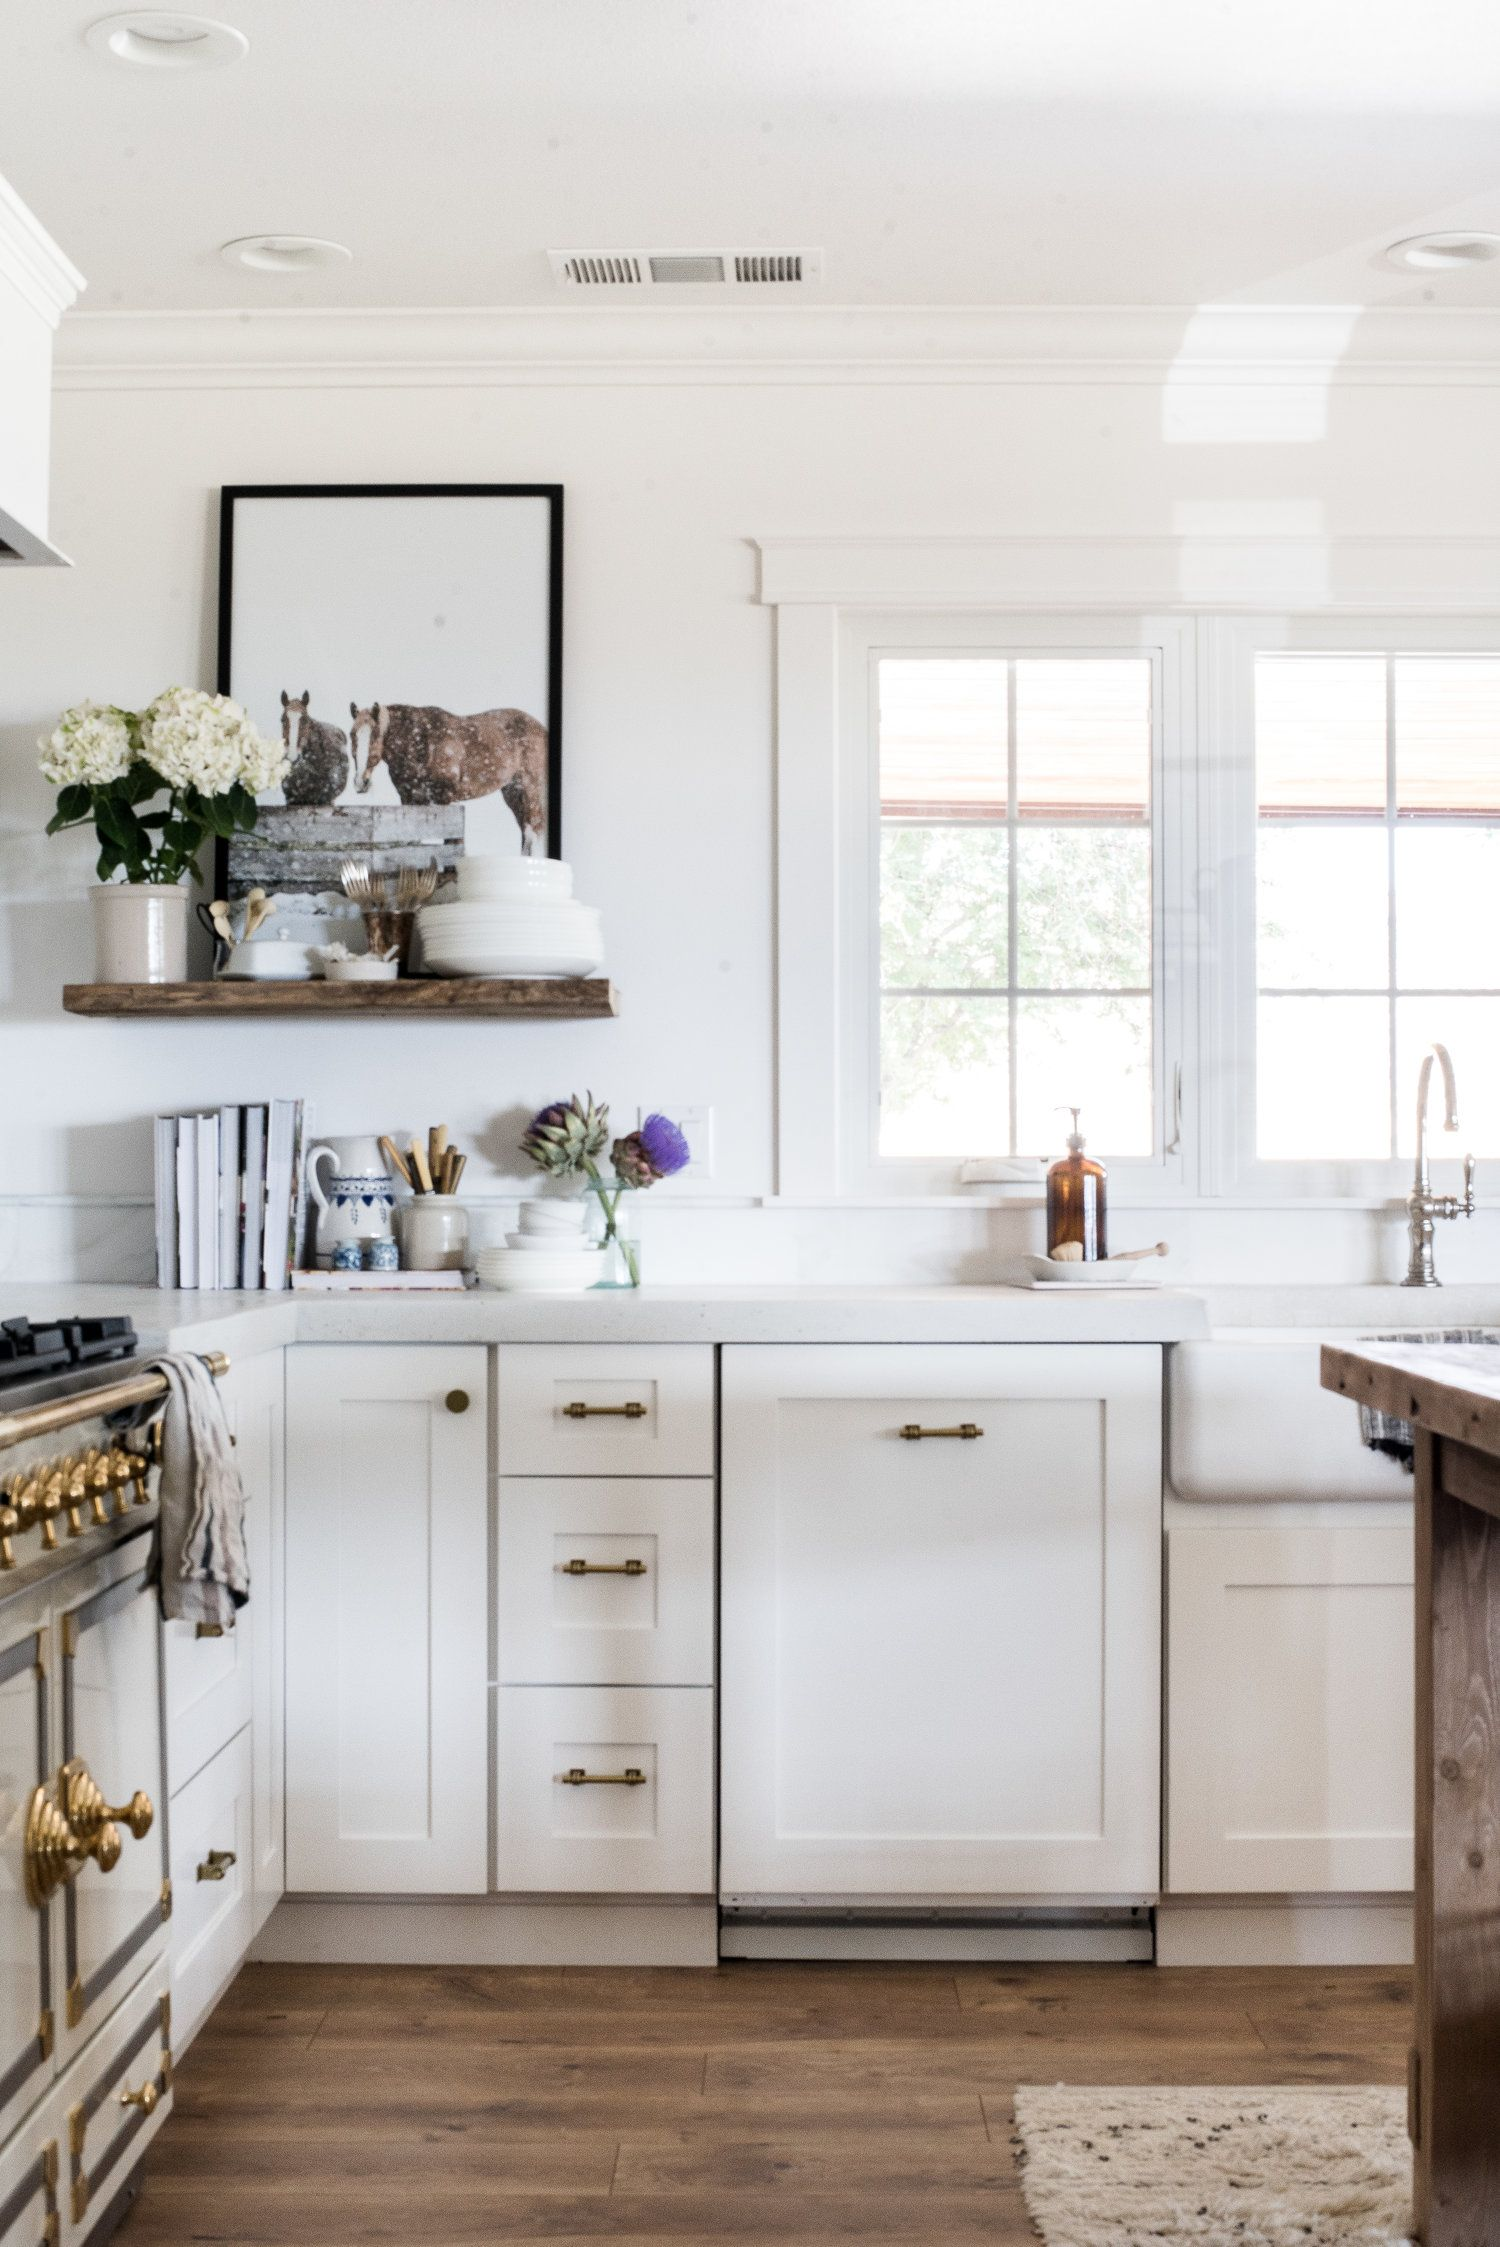 Classic Brass Cabinet Hardware From The Home Depot Boxwood Ave White Concrete Countertops Brick Fireplace Makeover Christmas Kitchen